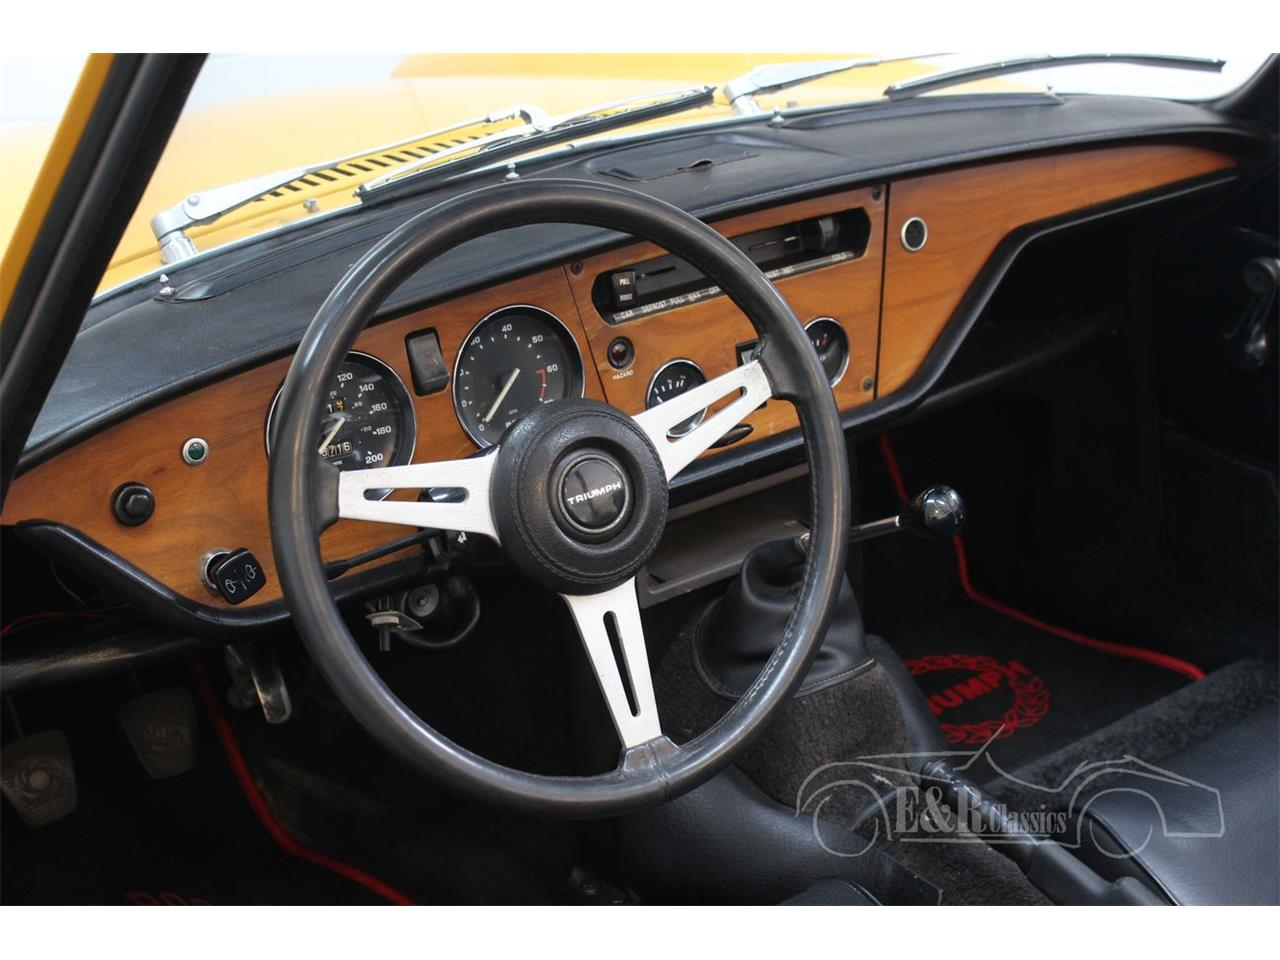 Large Picture of '74 Triumph Spitfire located in Waalwijk Noord-Brabant Offered by E & R Classics - QIIQ